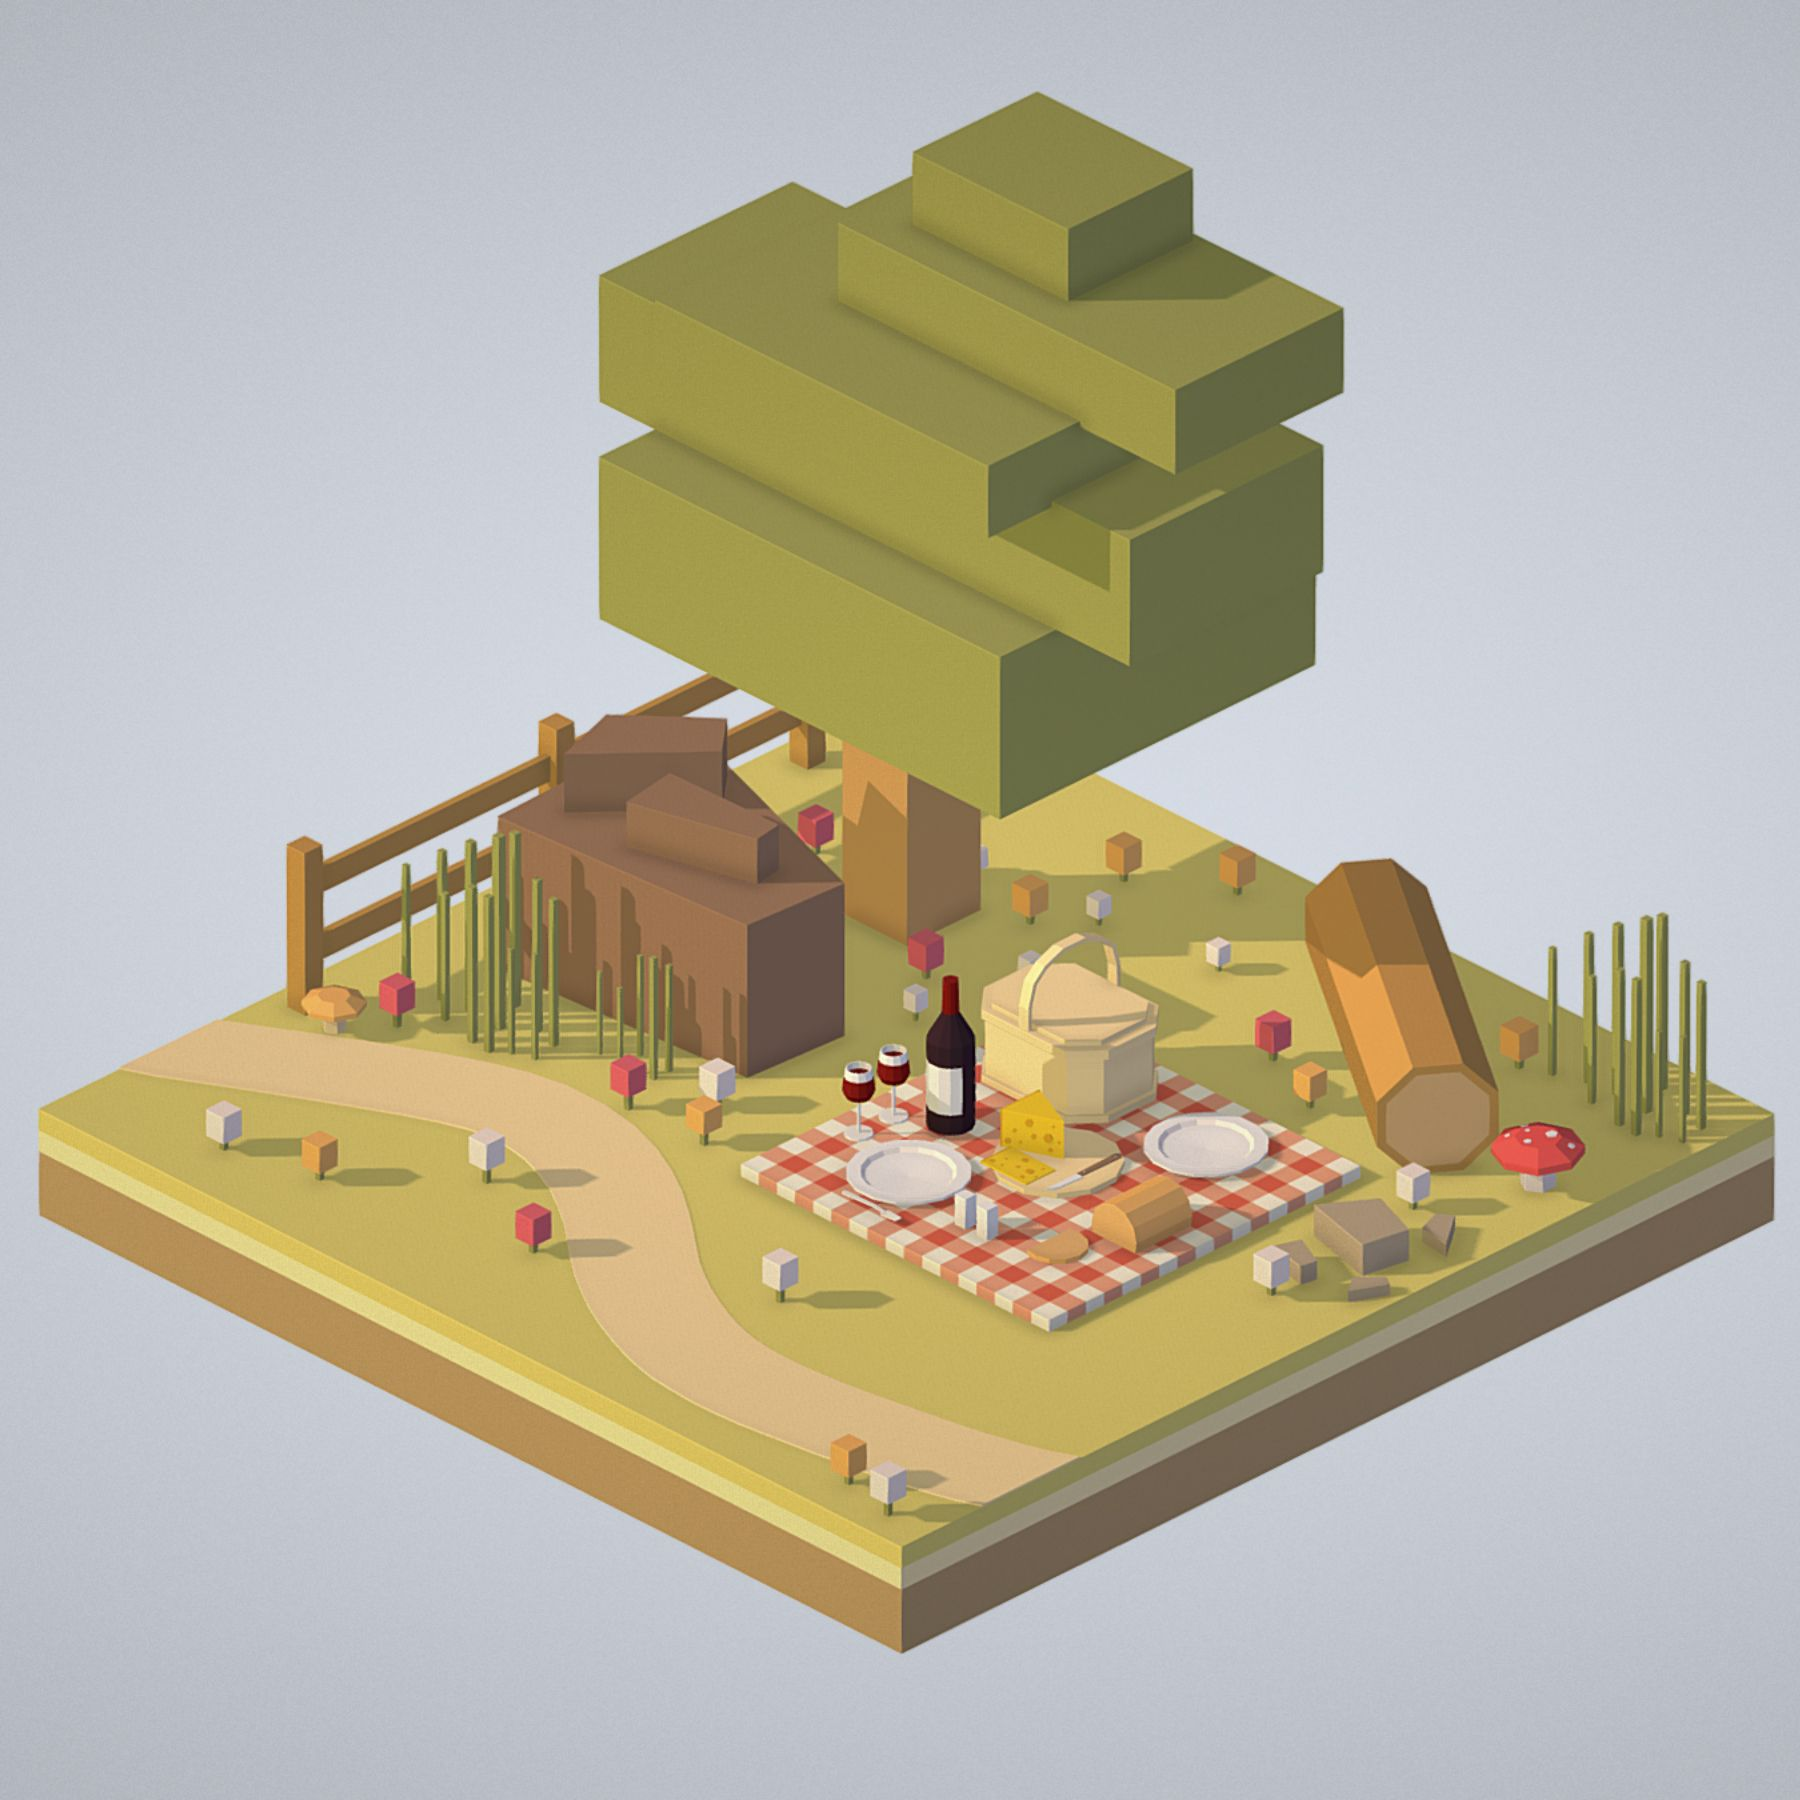 Pin by Michael K on GAME in 2019   Landscape model